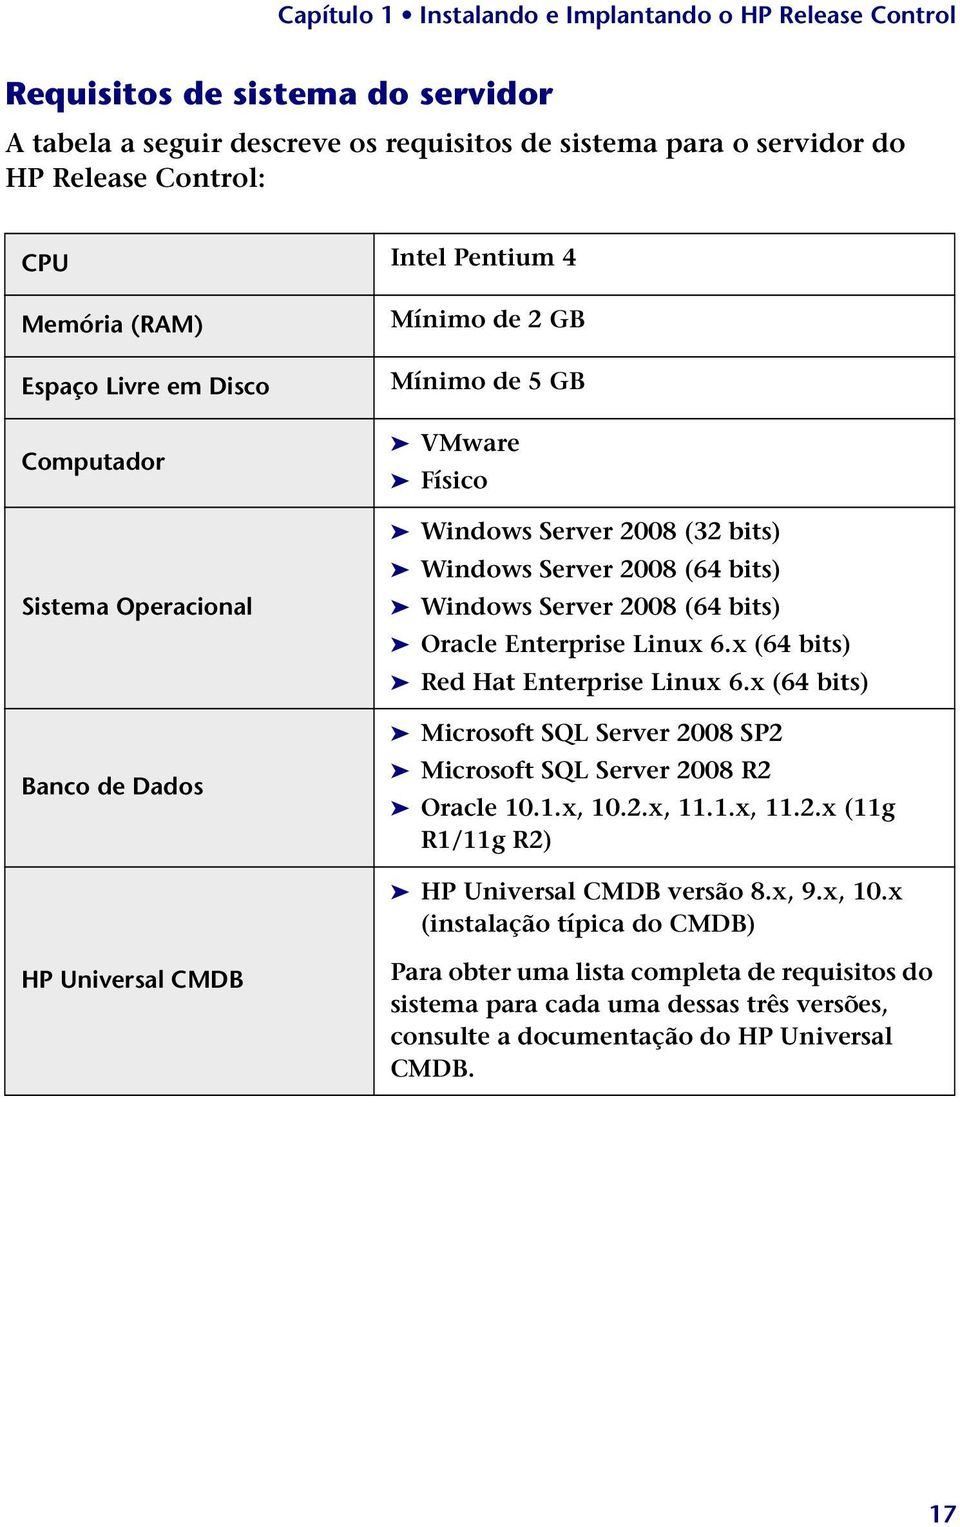 6.x (64 bits) Red Hat Enterprise Linux 6.x (64 bits) Microsoft SQL Server 2008 SP2 Microsoft SQL Server 2008 R2 Oracle 10.1.x, 10.2.x, 11.1.x, 11.2.x (11g R1/11g R2) HP Universal CMDB versão 8.